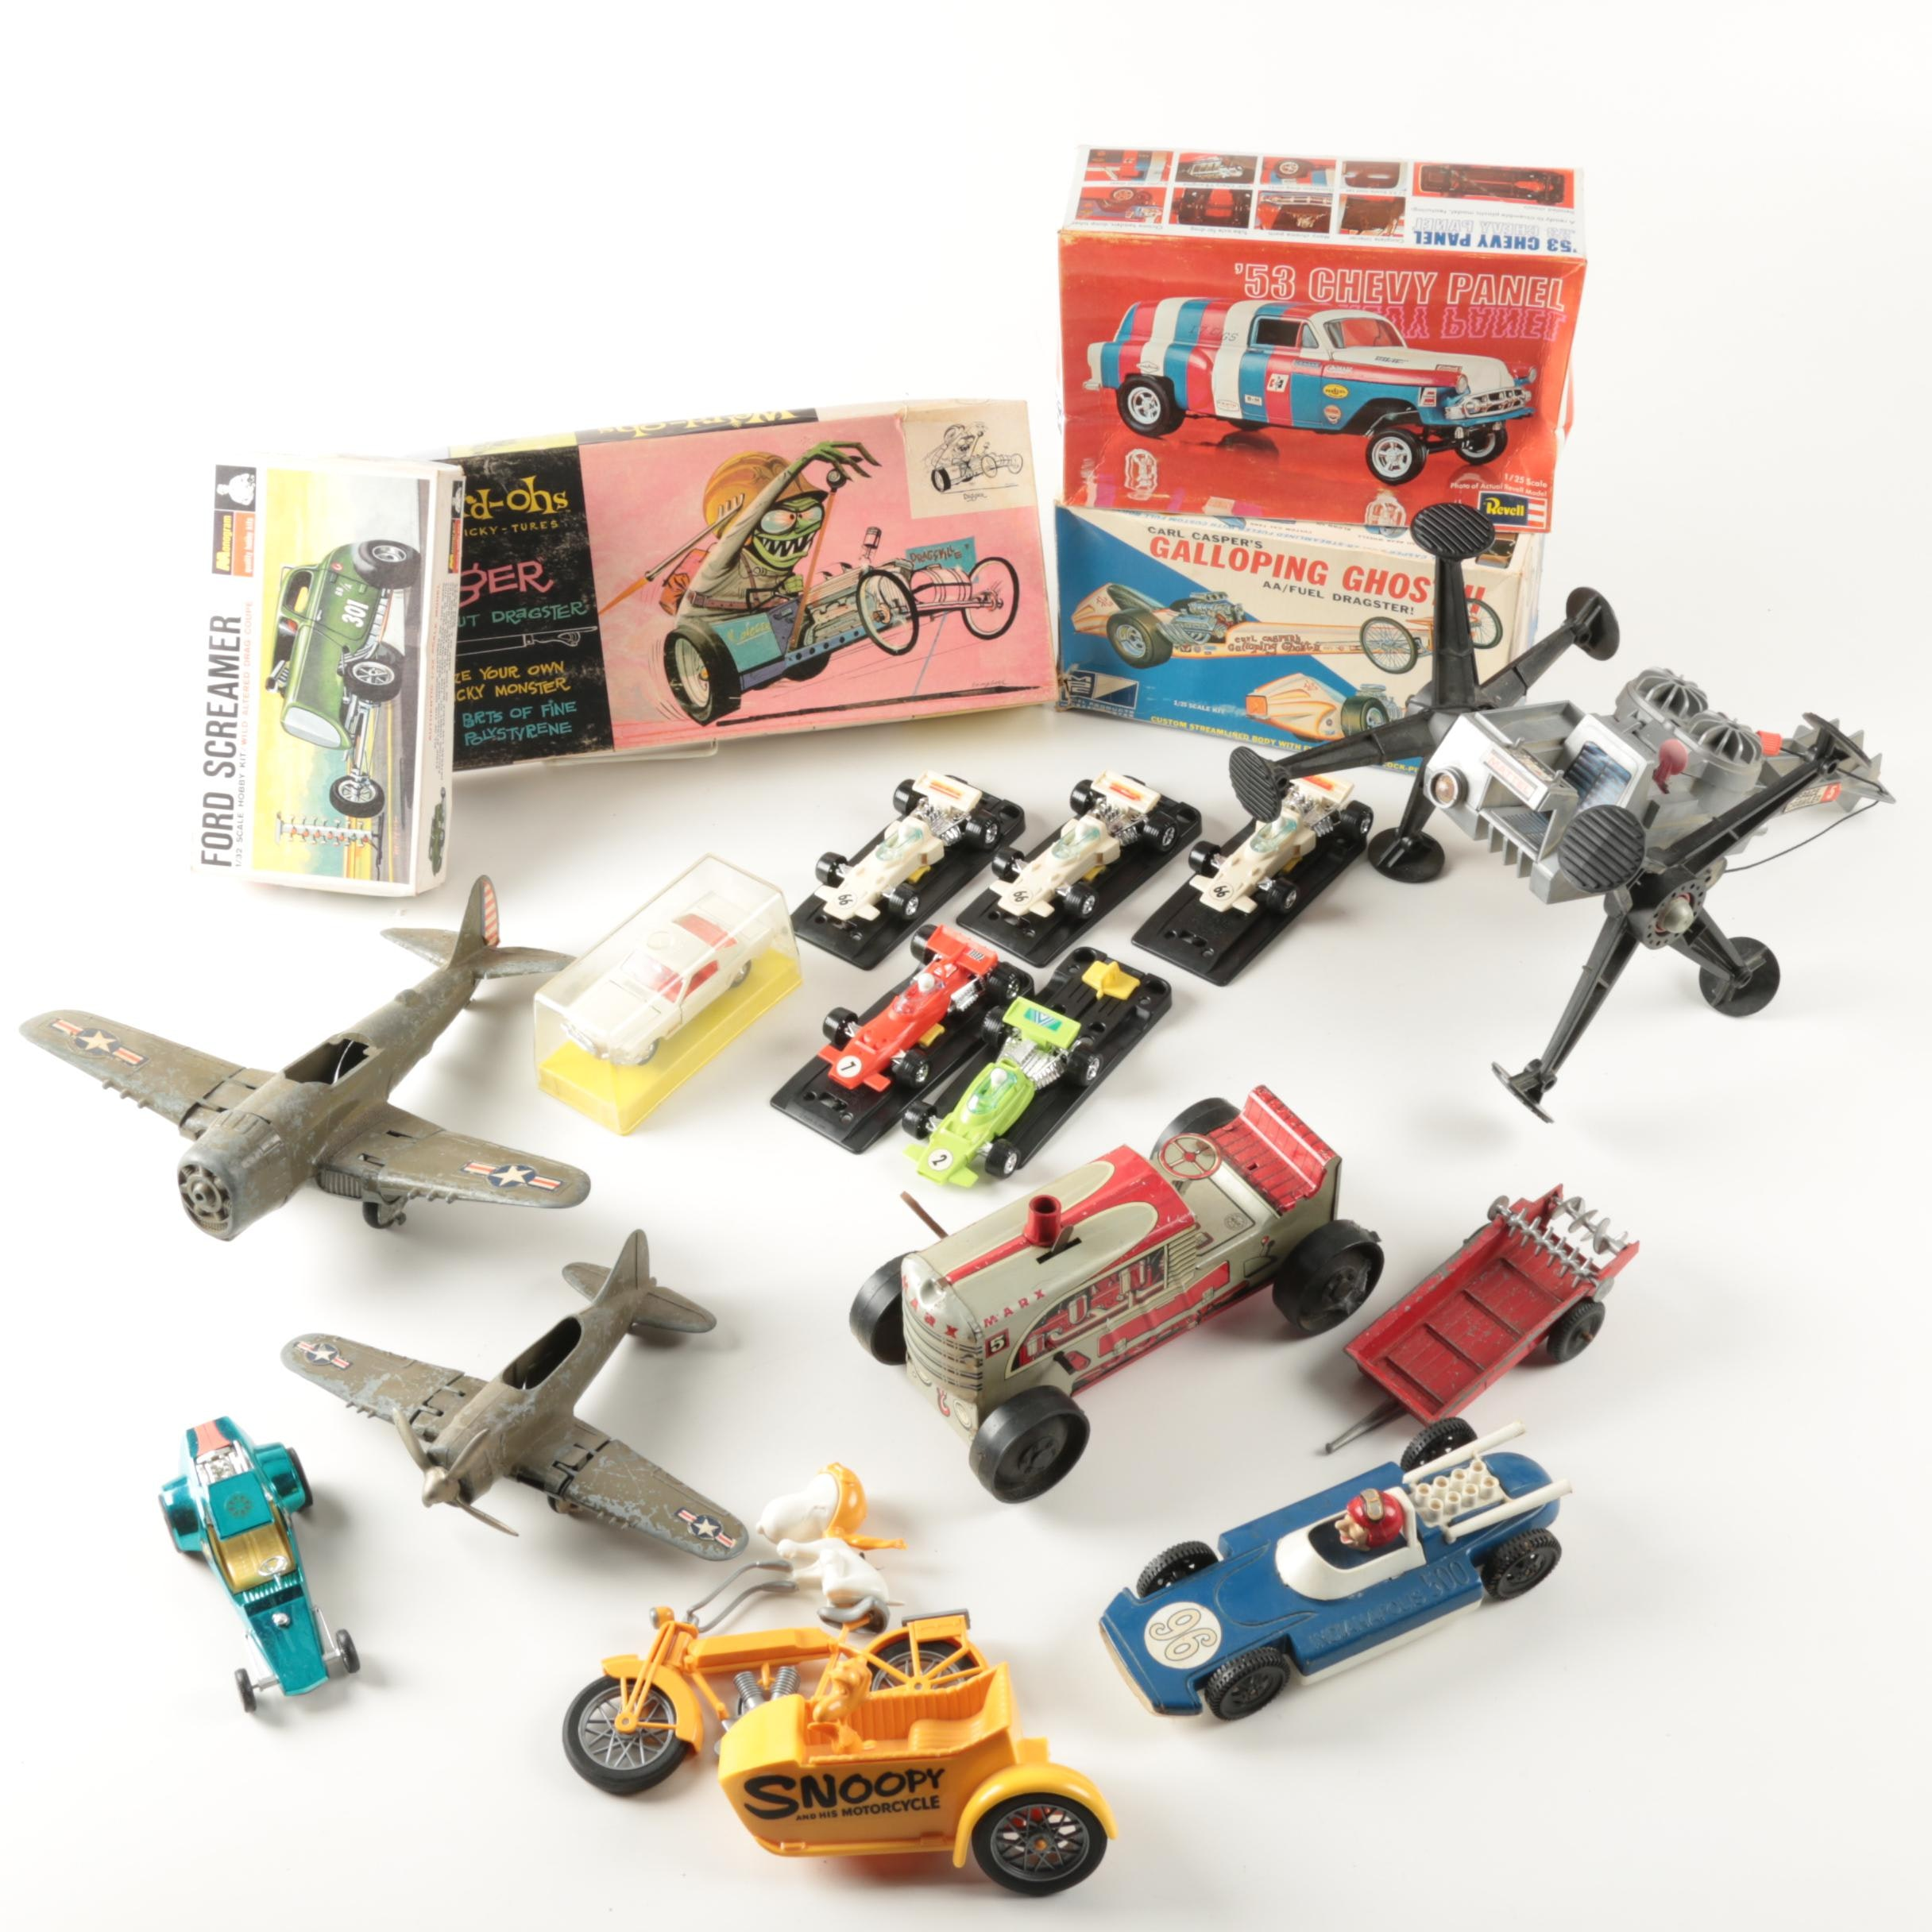 Vintage Model Kits and Assorted Toy Vehicles